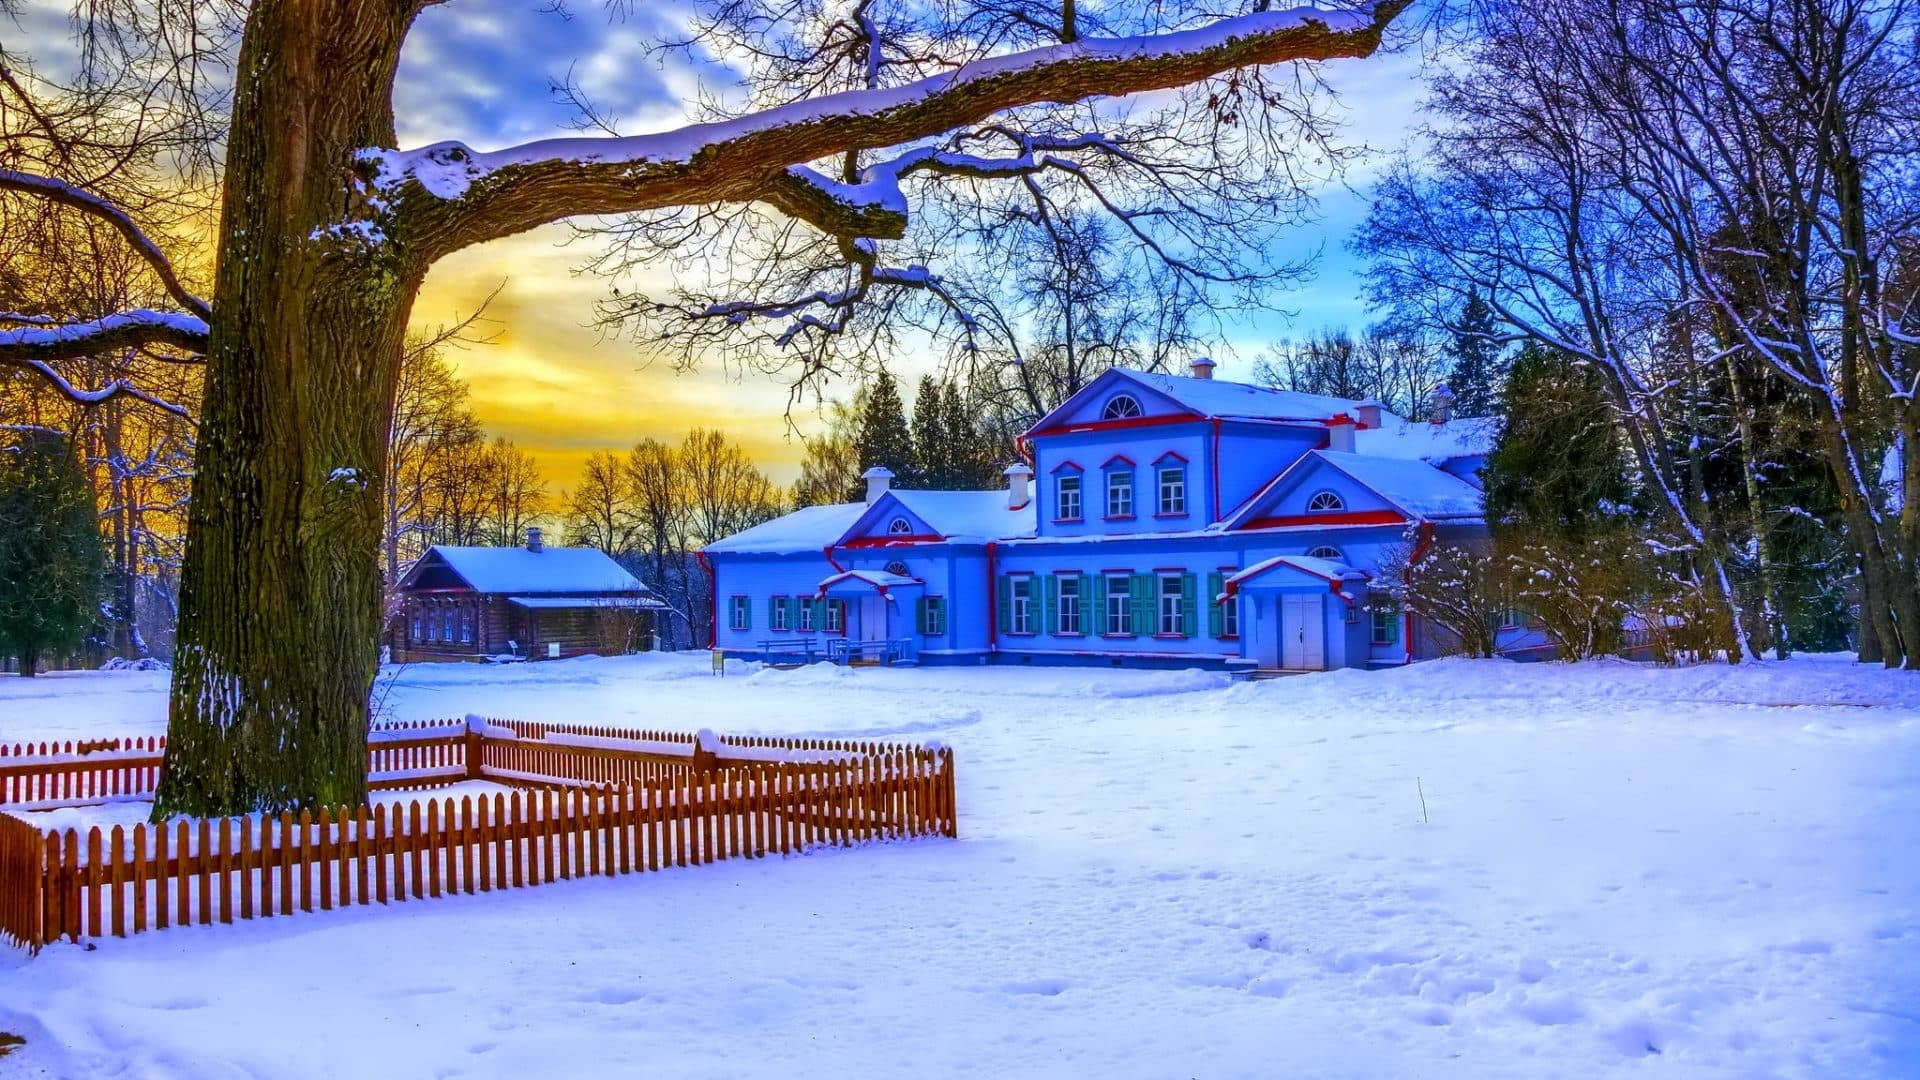 a large house at sunset in winter